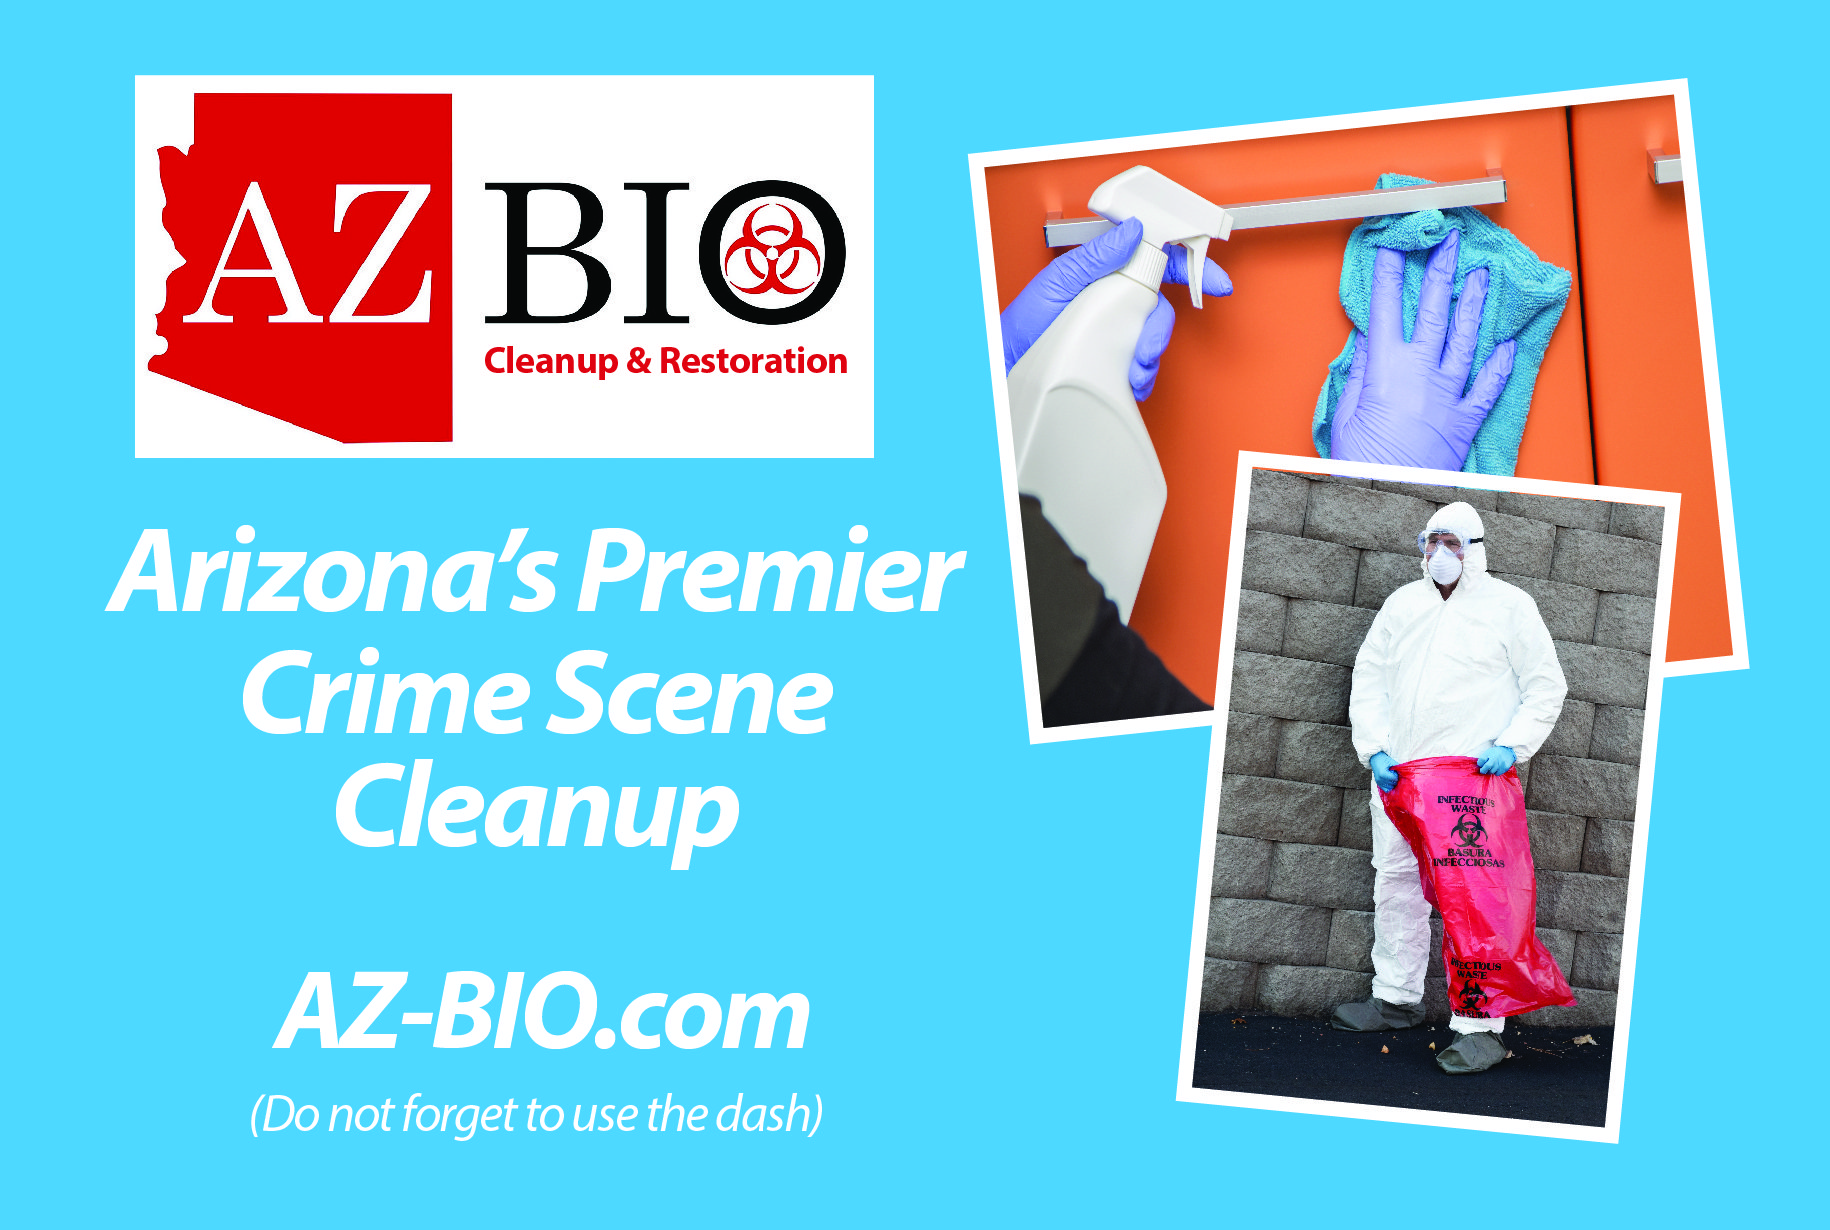 Joe's AZBIO Services